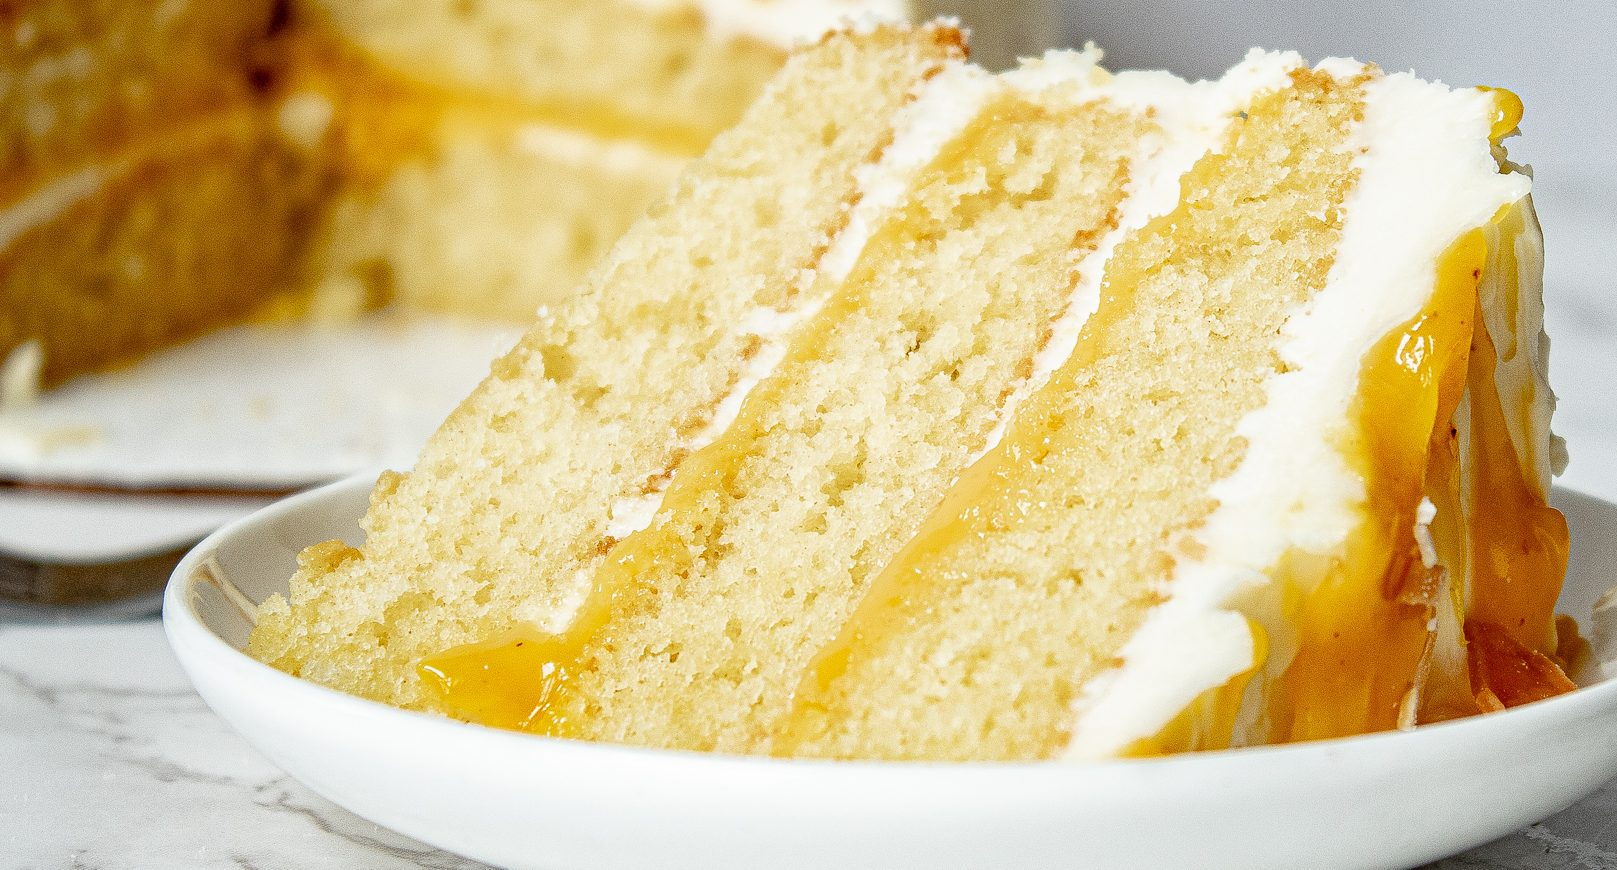 Passionfruit Cake Recipe - Fluffy, Moist Vanilla Cake with Passionfruit Curd | Chenée Today